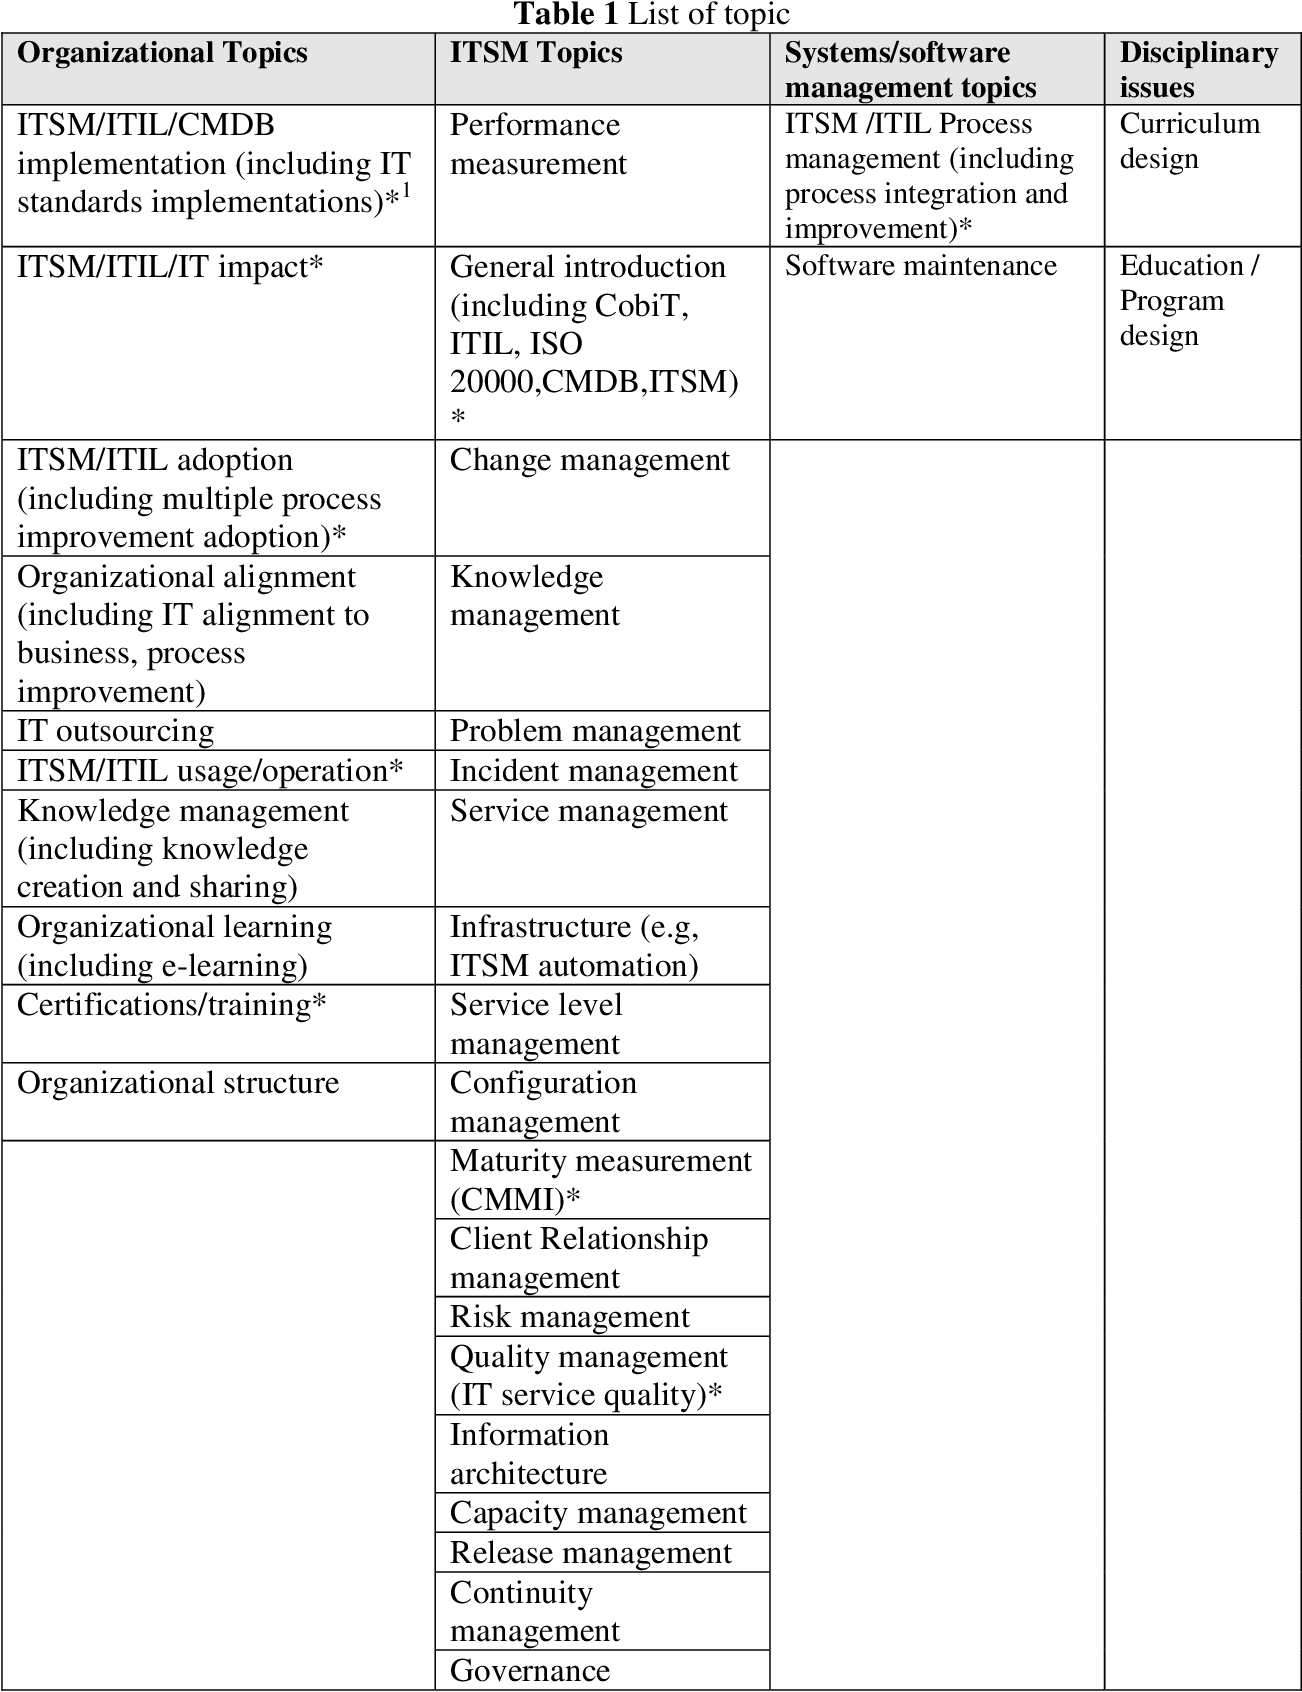 Table 1 from Research in Information Technology Service